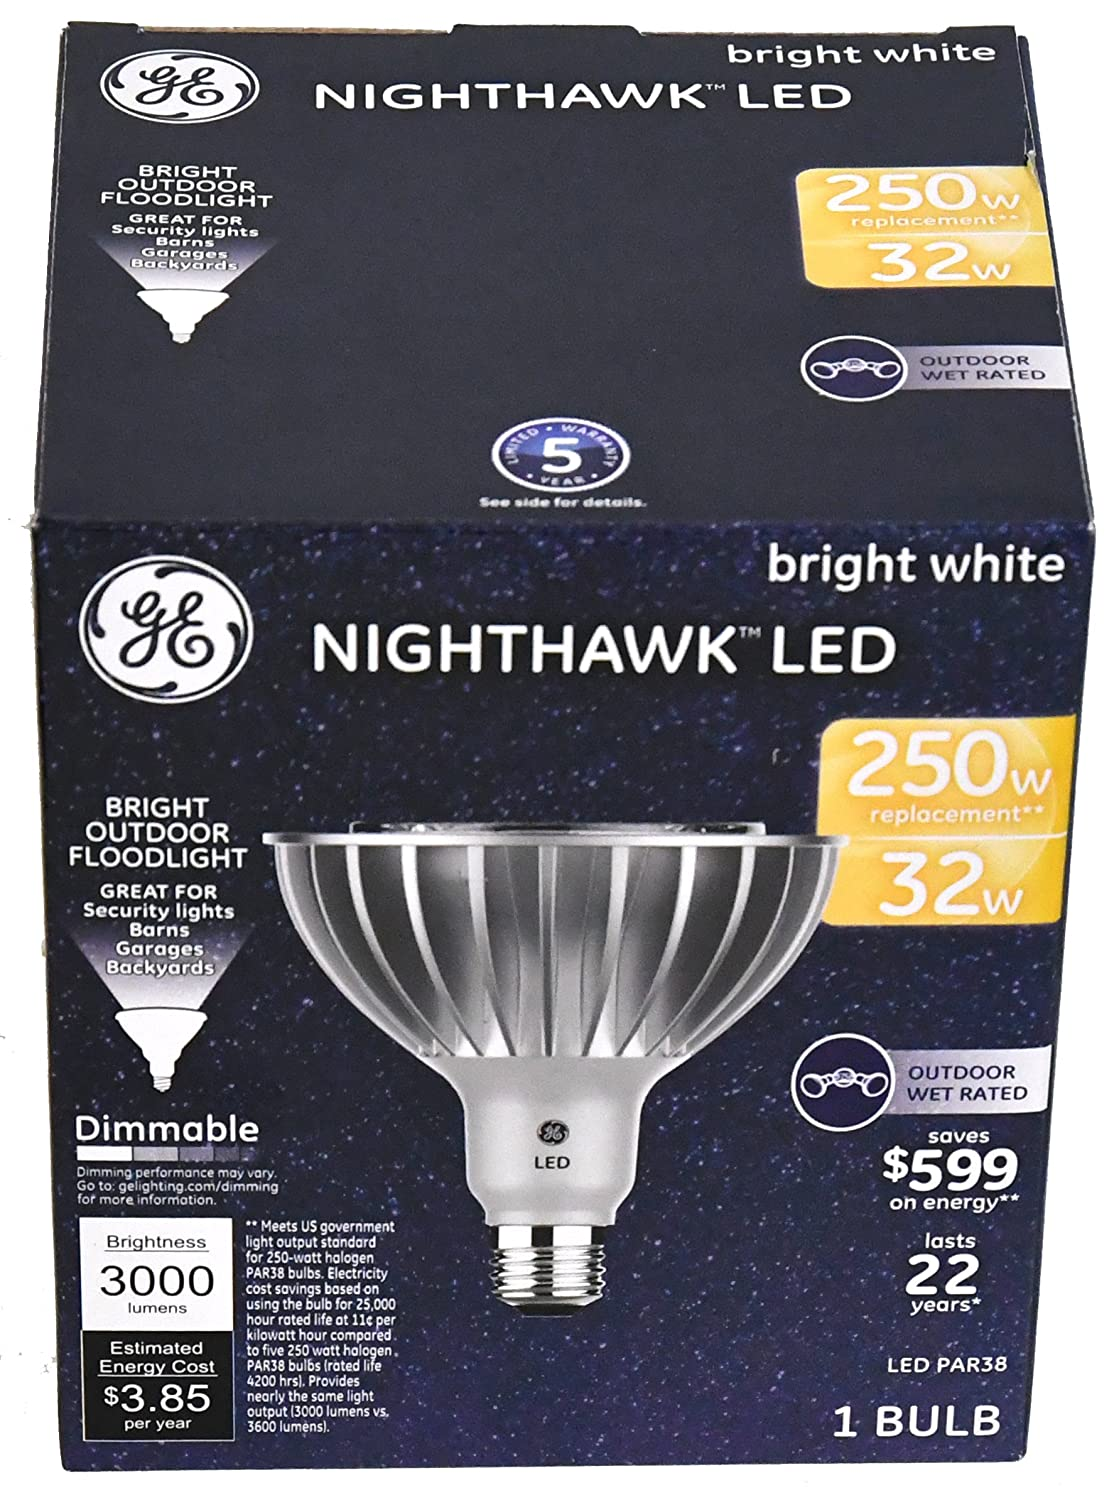 Nighthawk LED 32W GE LED Bright White Outdoor Floodlight 3000 Lumens (1 Bulb per Package),